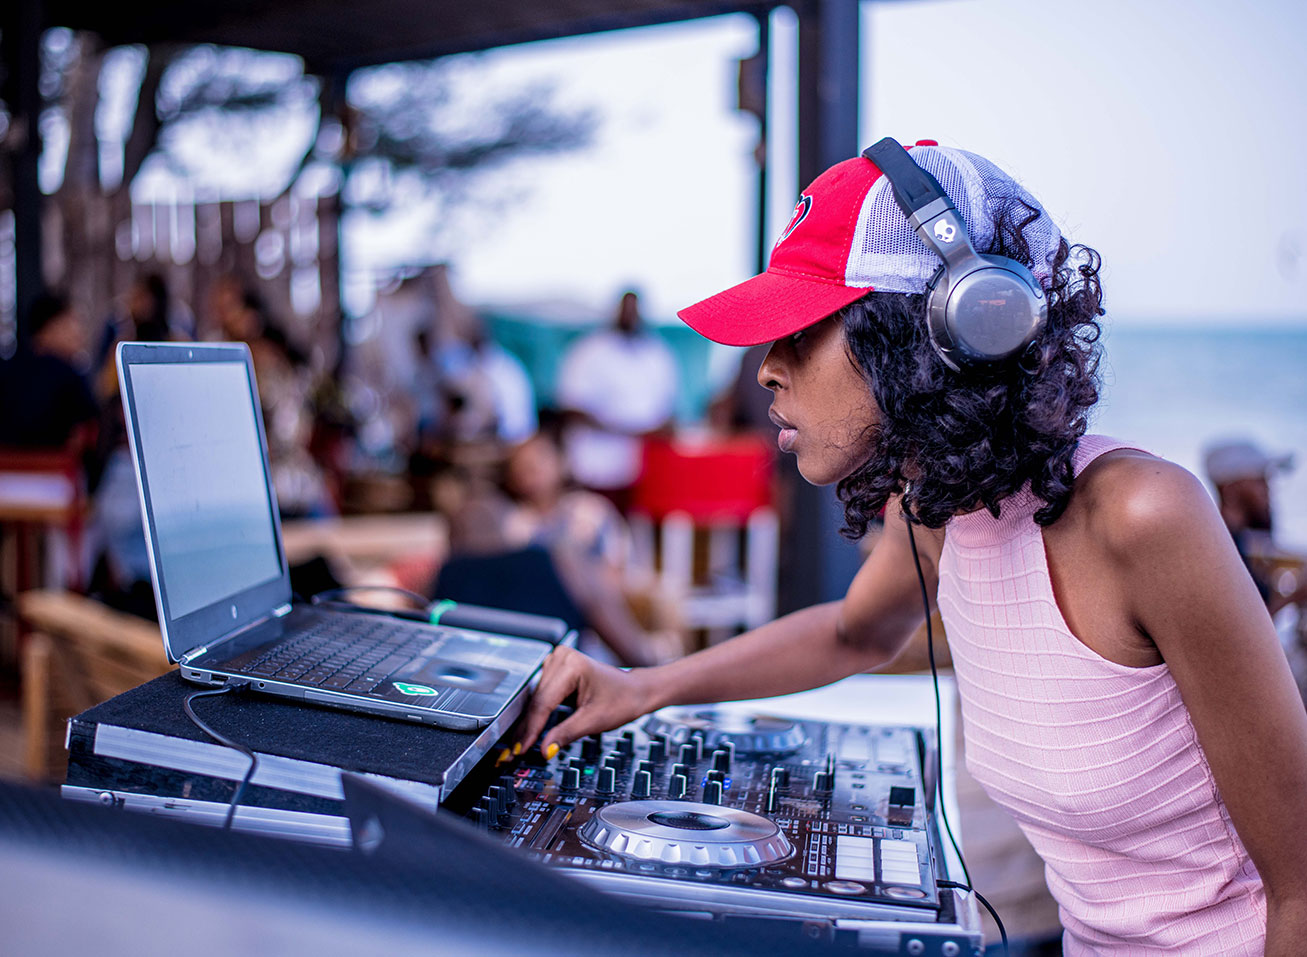 Live DJ and entertainment at The Thailand International Boat Show in Phuket